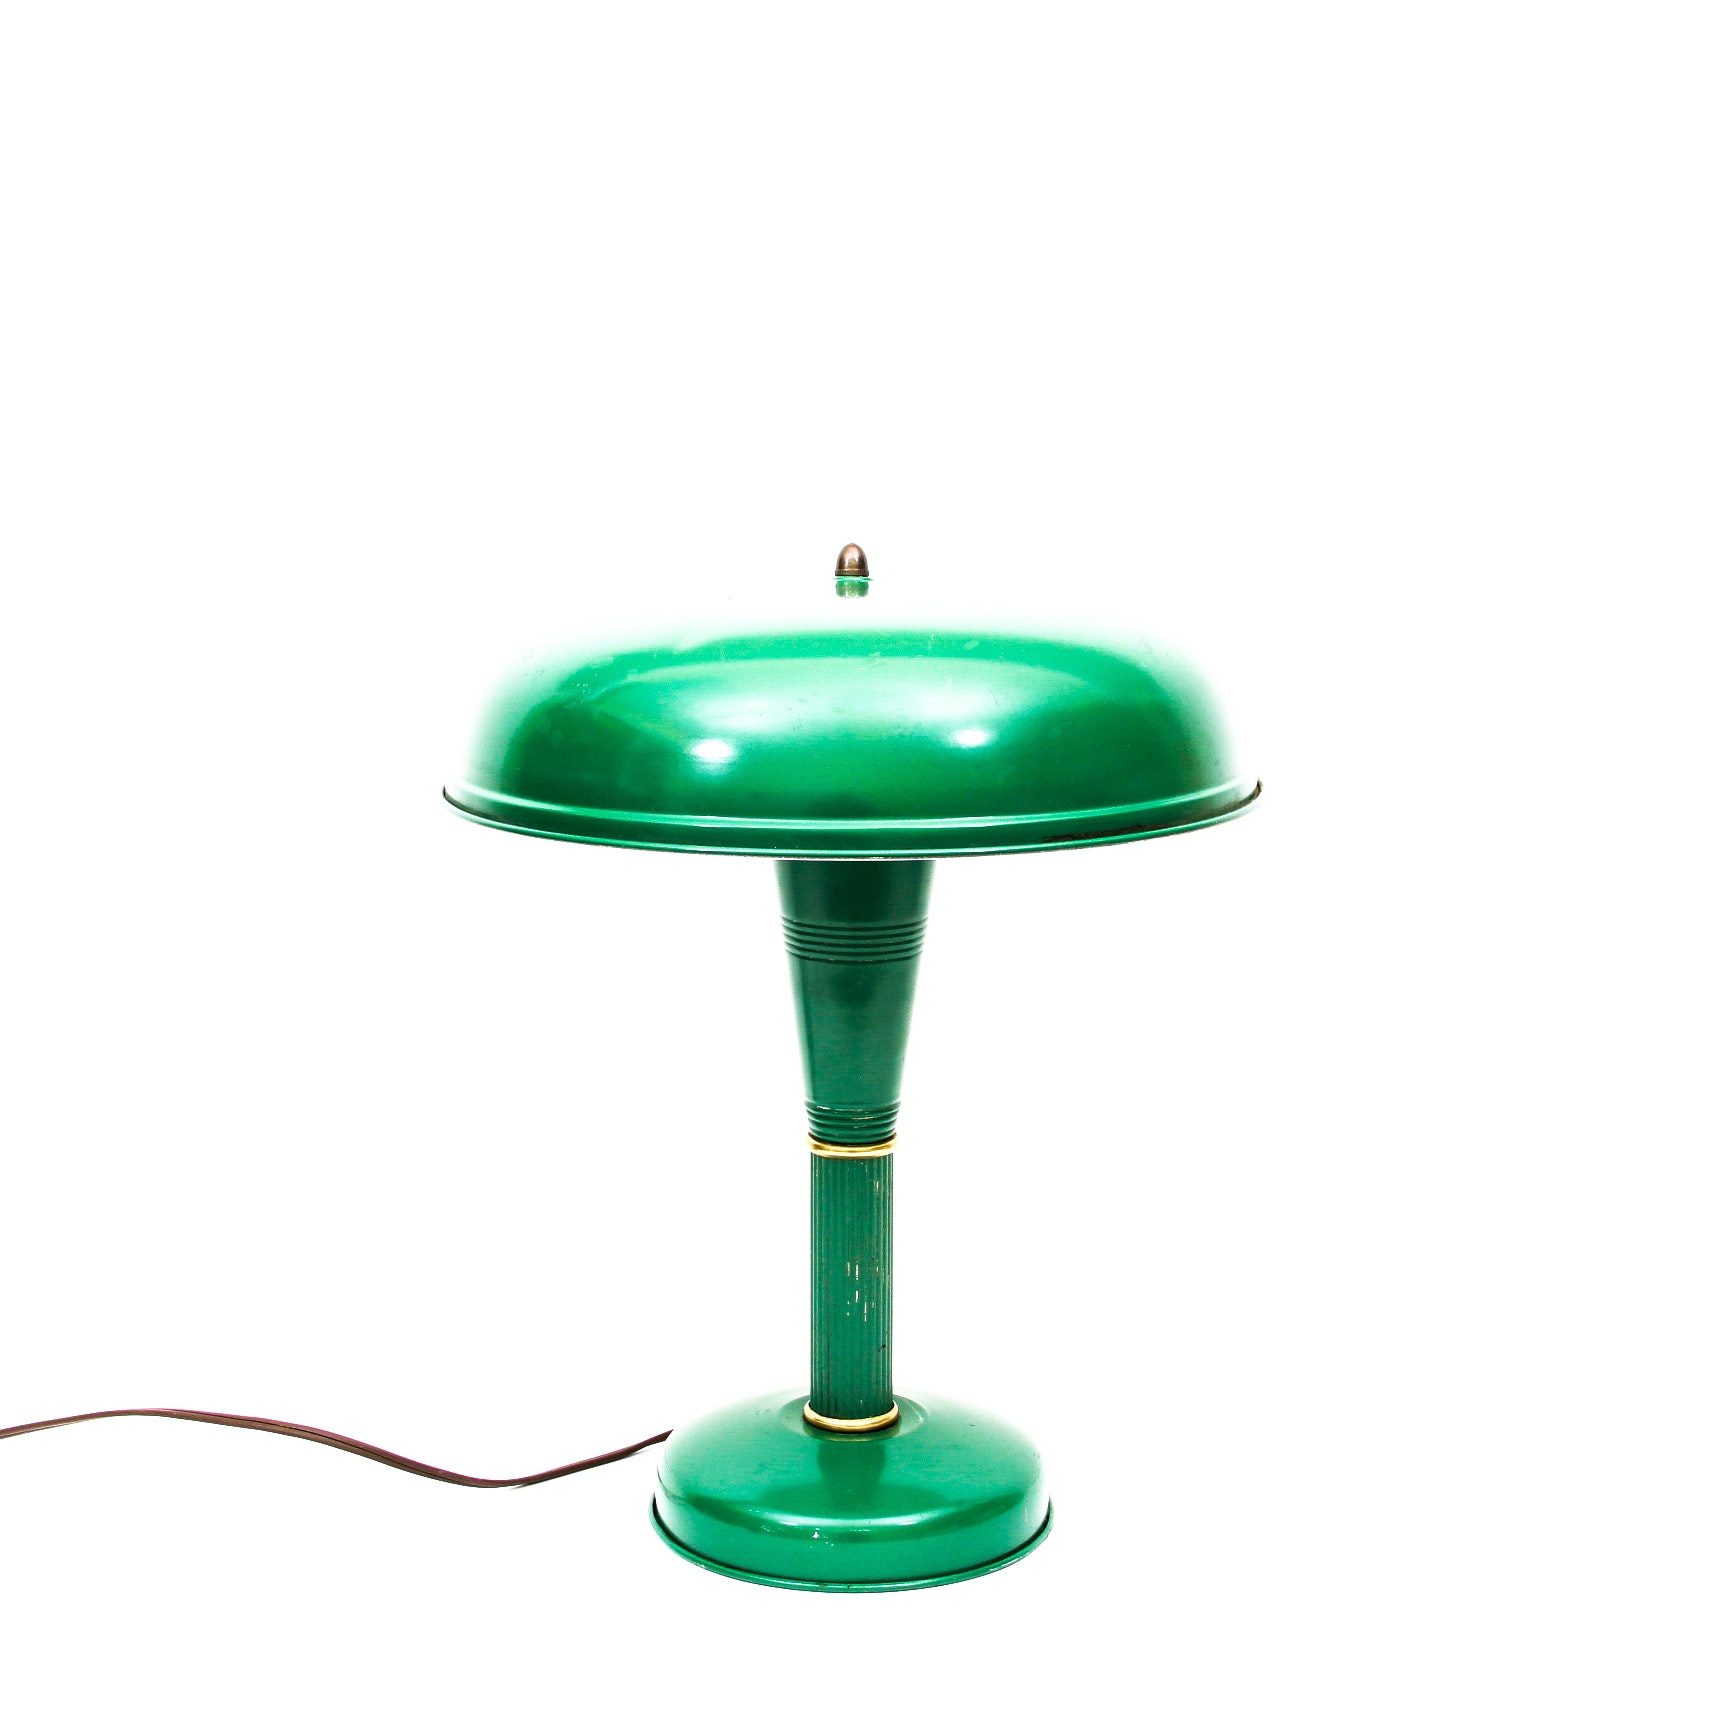 Vintage Kelly Green Enameled Art Deco Industrial Desk Lamp